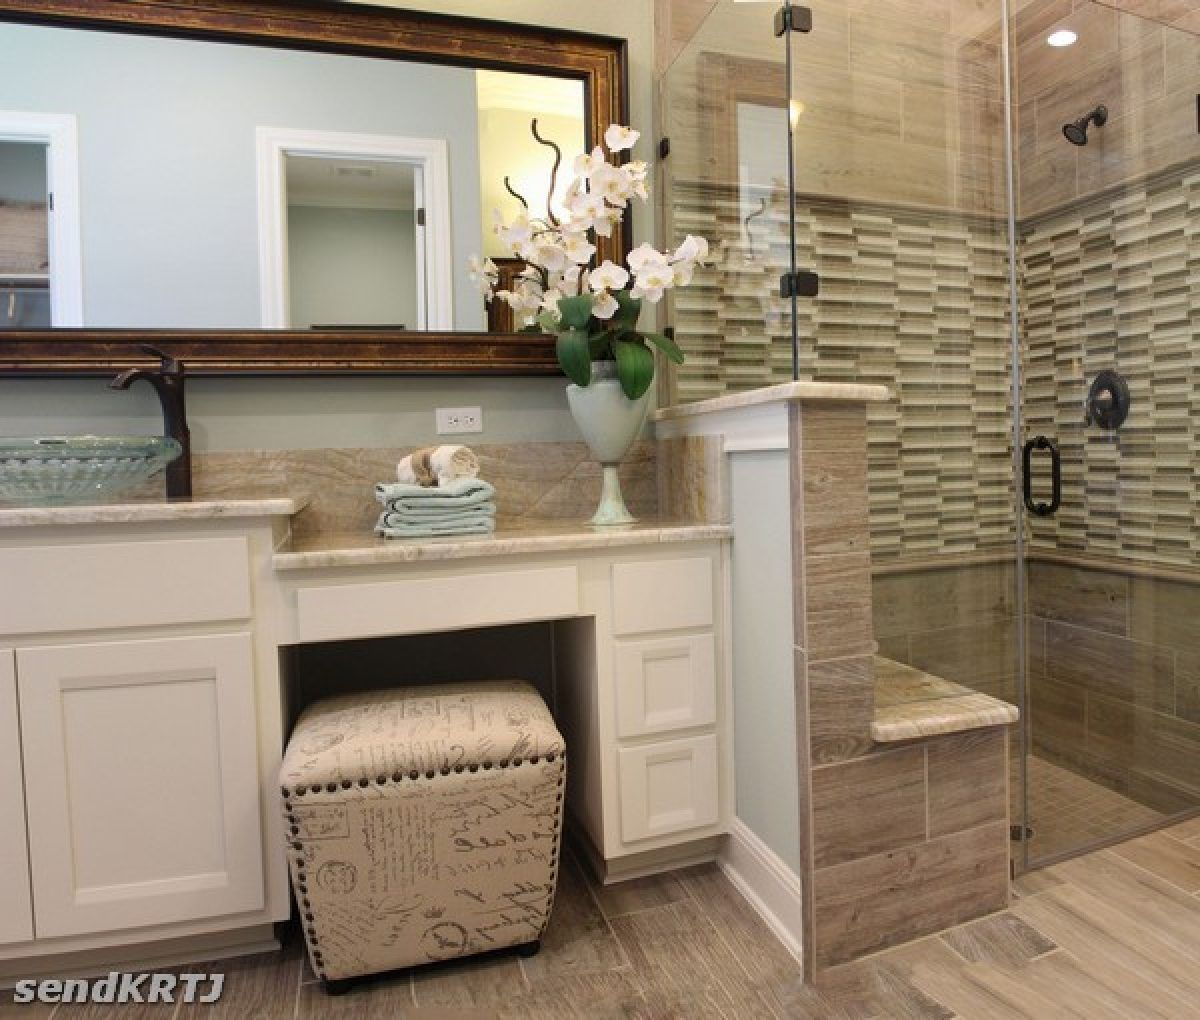 pin by erlangfahresi on popular woodworking plans master on replacement countertops for bathroom vanity id=34507